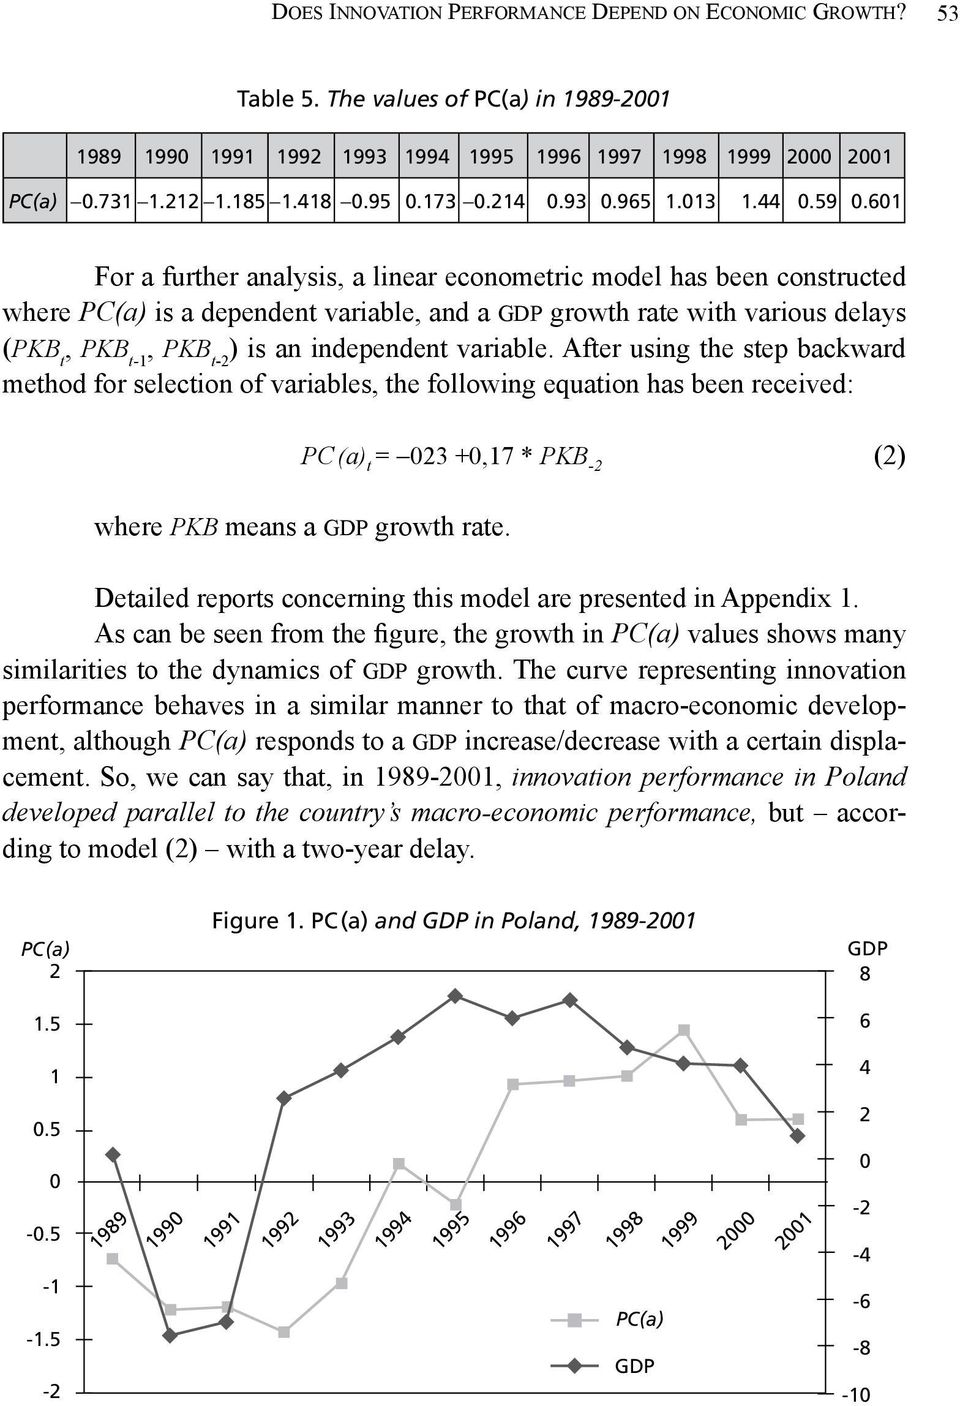 601 For a further analysis, a linear econometric model has been constructed where pc(a) is a dependent variable, and a gdp growth rate with various delays (pkb t, pkb t1, pkb t2 ) is an independent